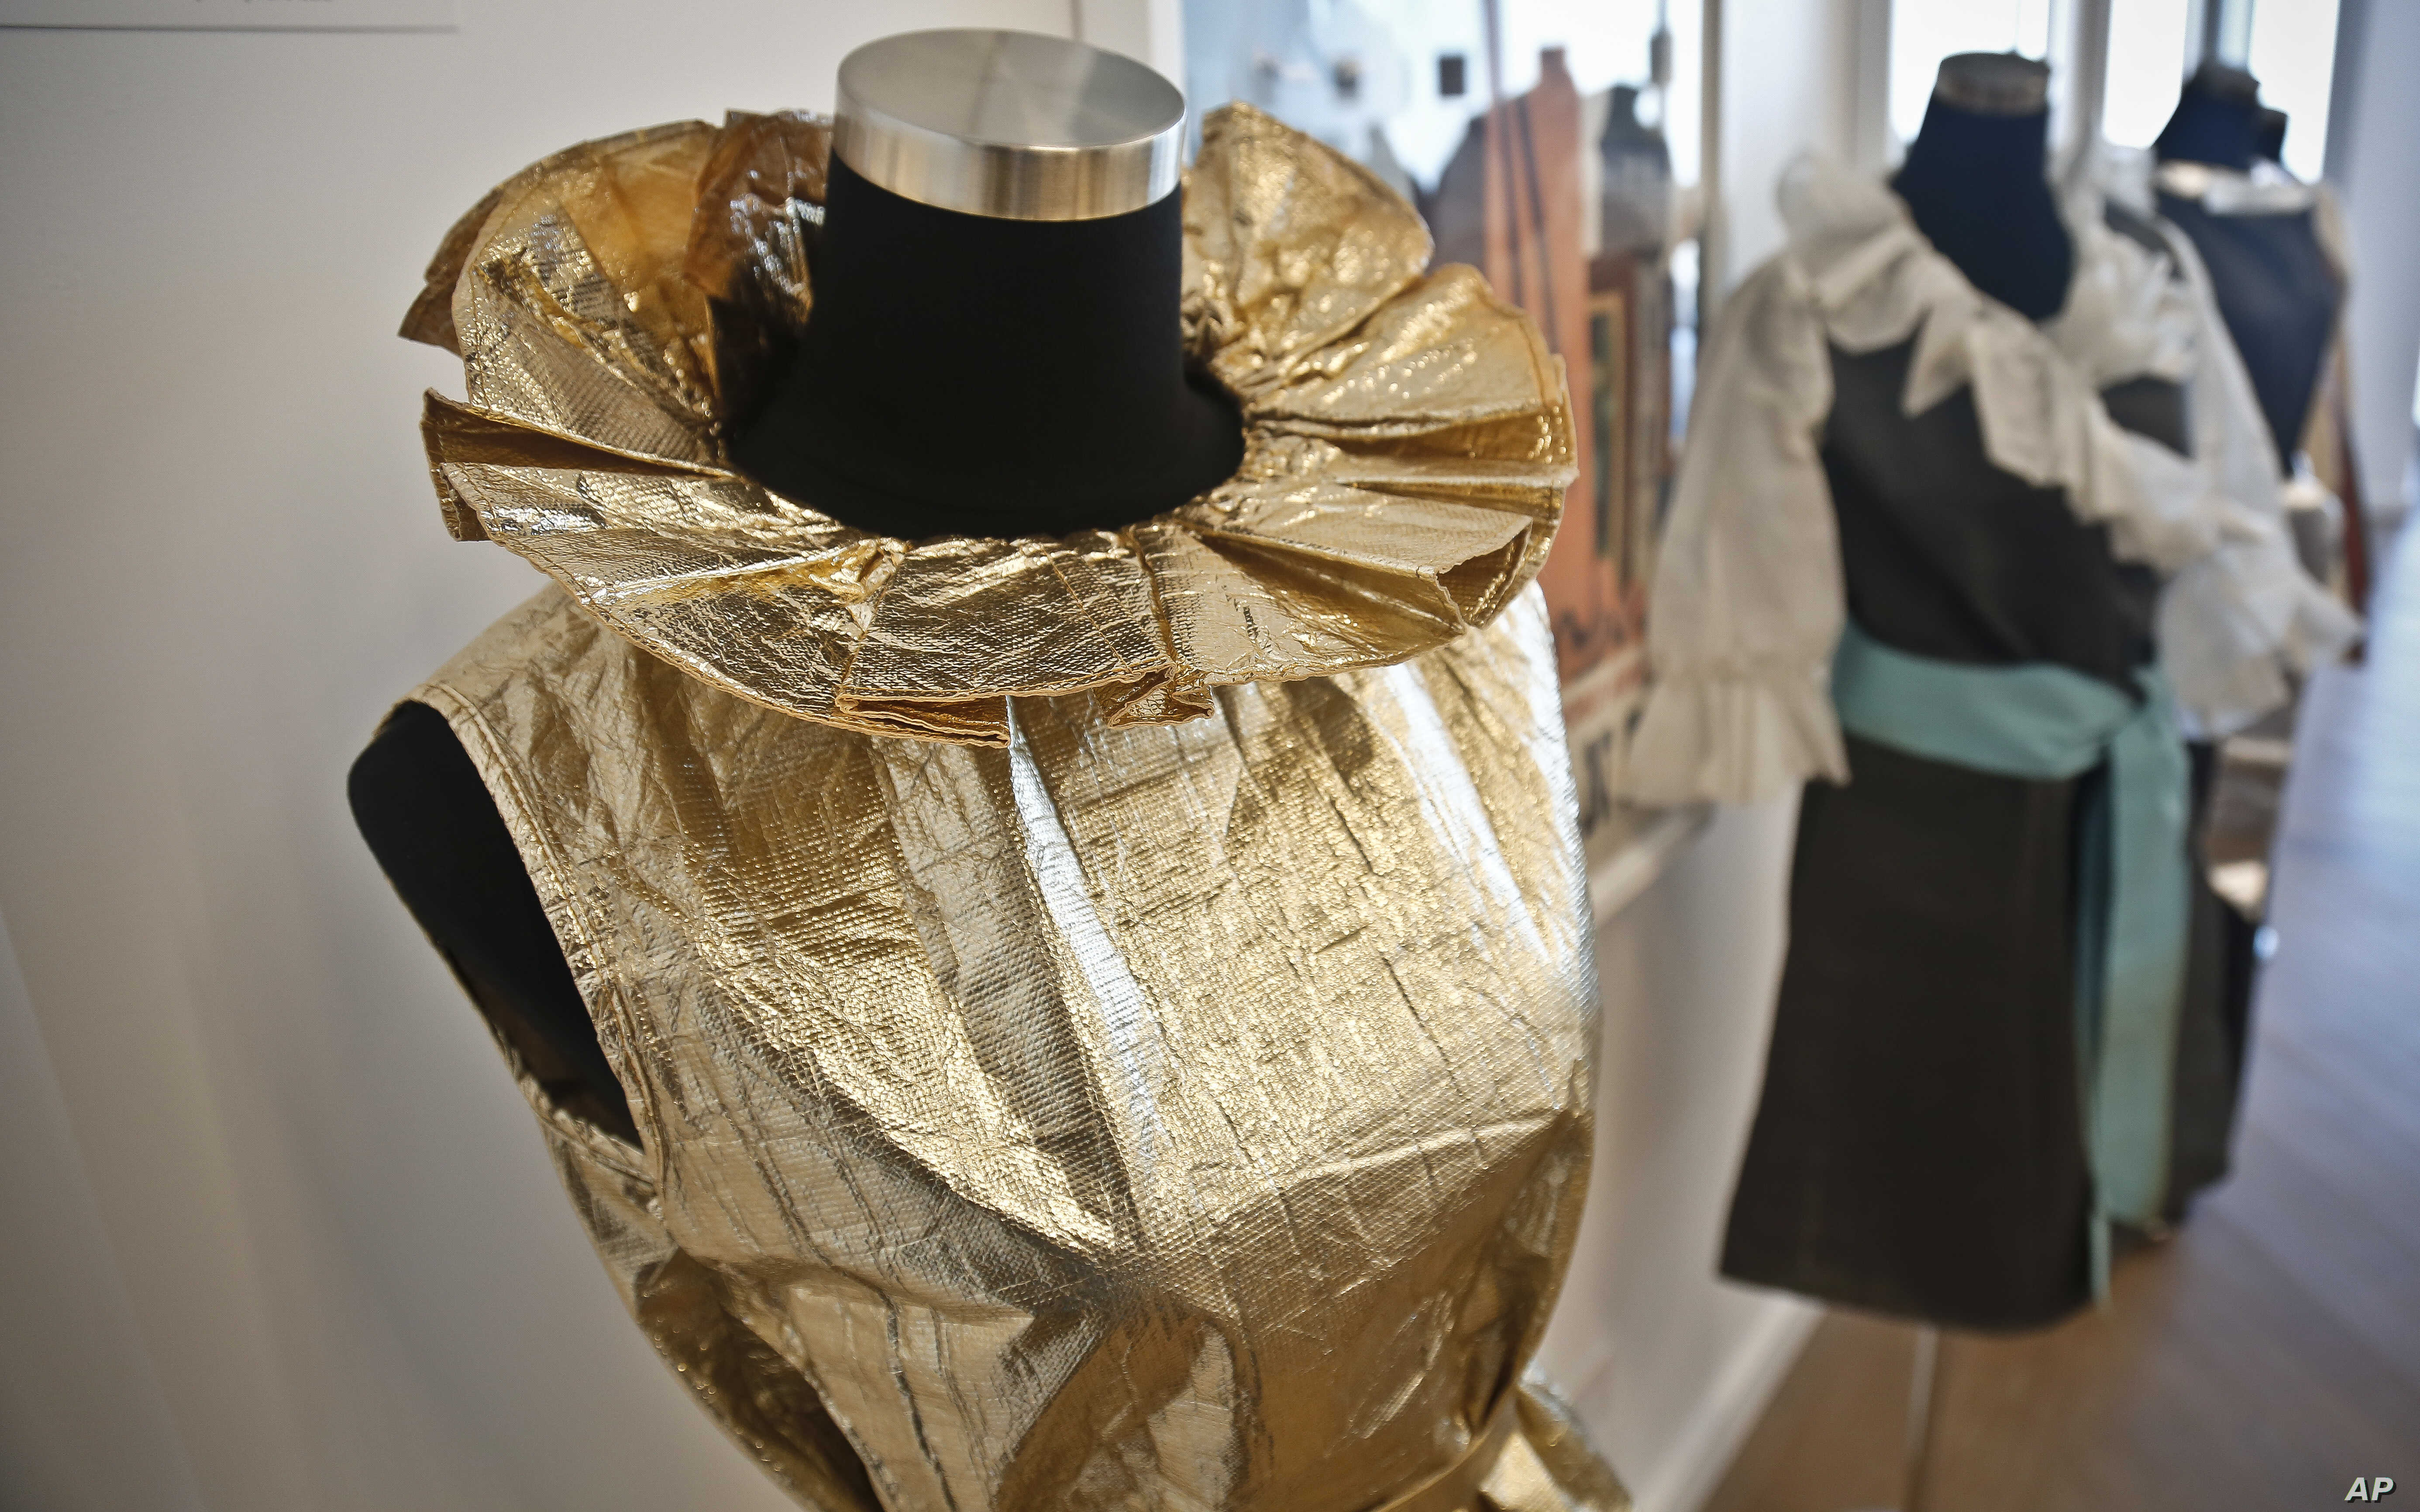 In this Oct. 4, 2017 photo, a TWA disposable paper uniform worn by flight attendants, is displayed at an installation of retro items at the company's meeting space in One World Trade Center in New York.